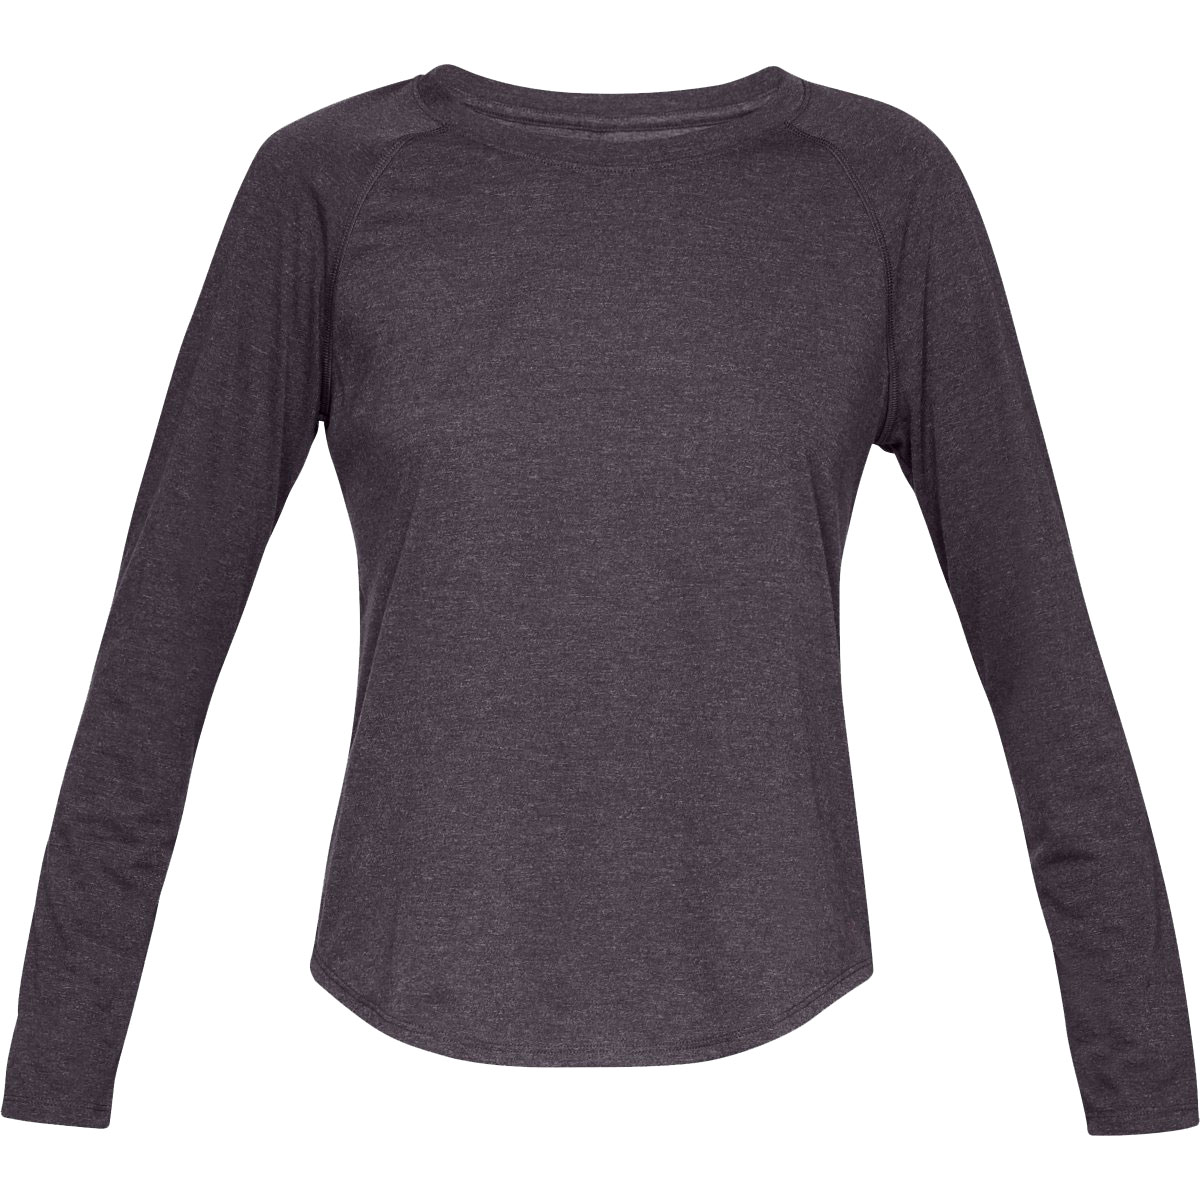 Under Armour Women's Ua Whisperlight Long-Sleeve Shirt - Purple, S